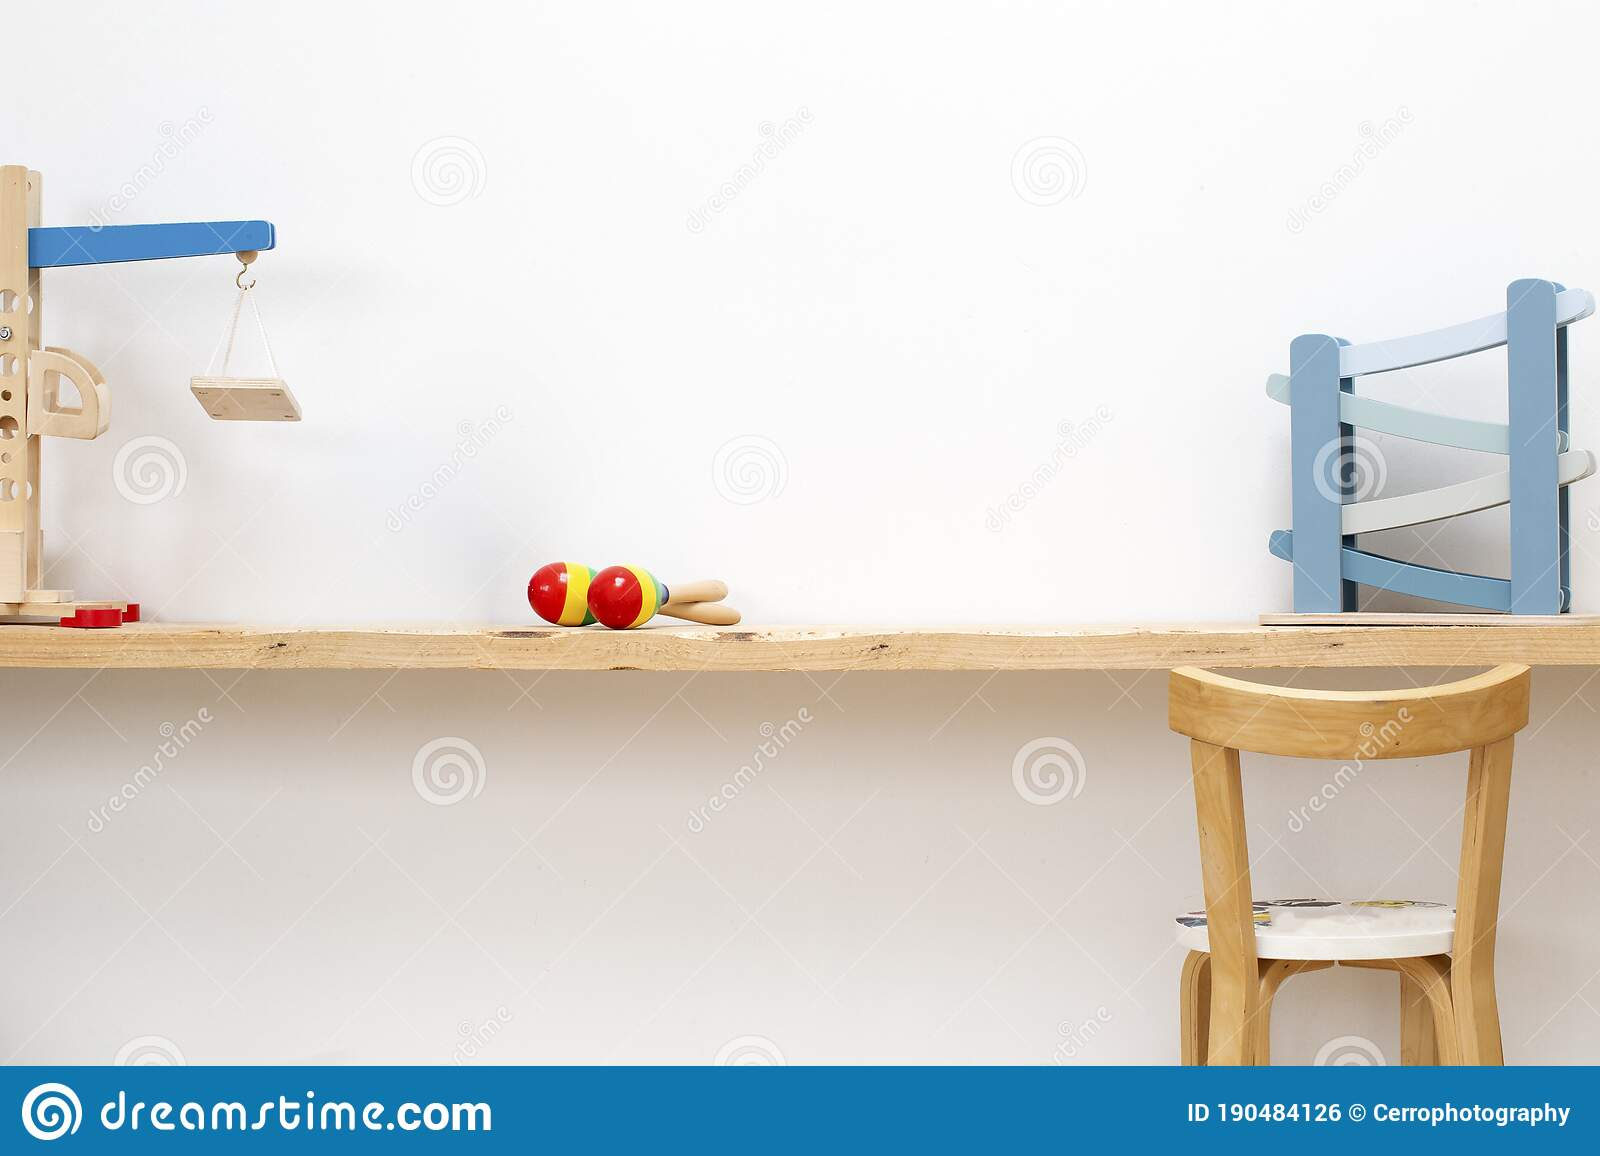 Children S Playroom With Wooden Table And Child Chair And Some Toys Modern Scandinavian Style Stock Photo Image Of Cozy Table 190484126